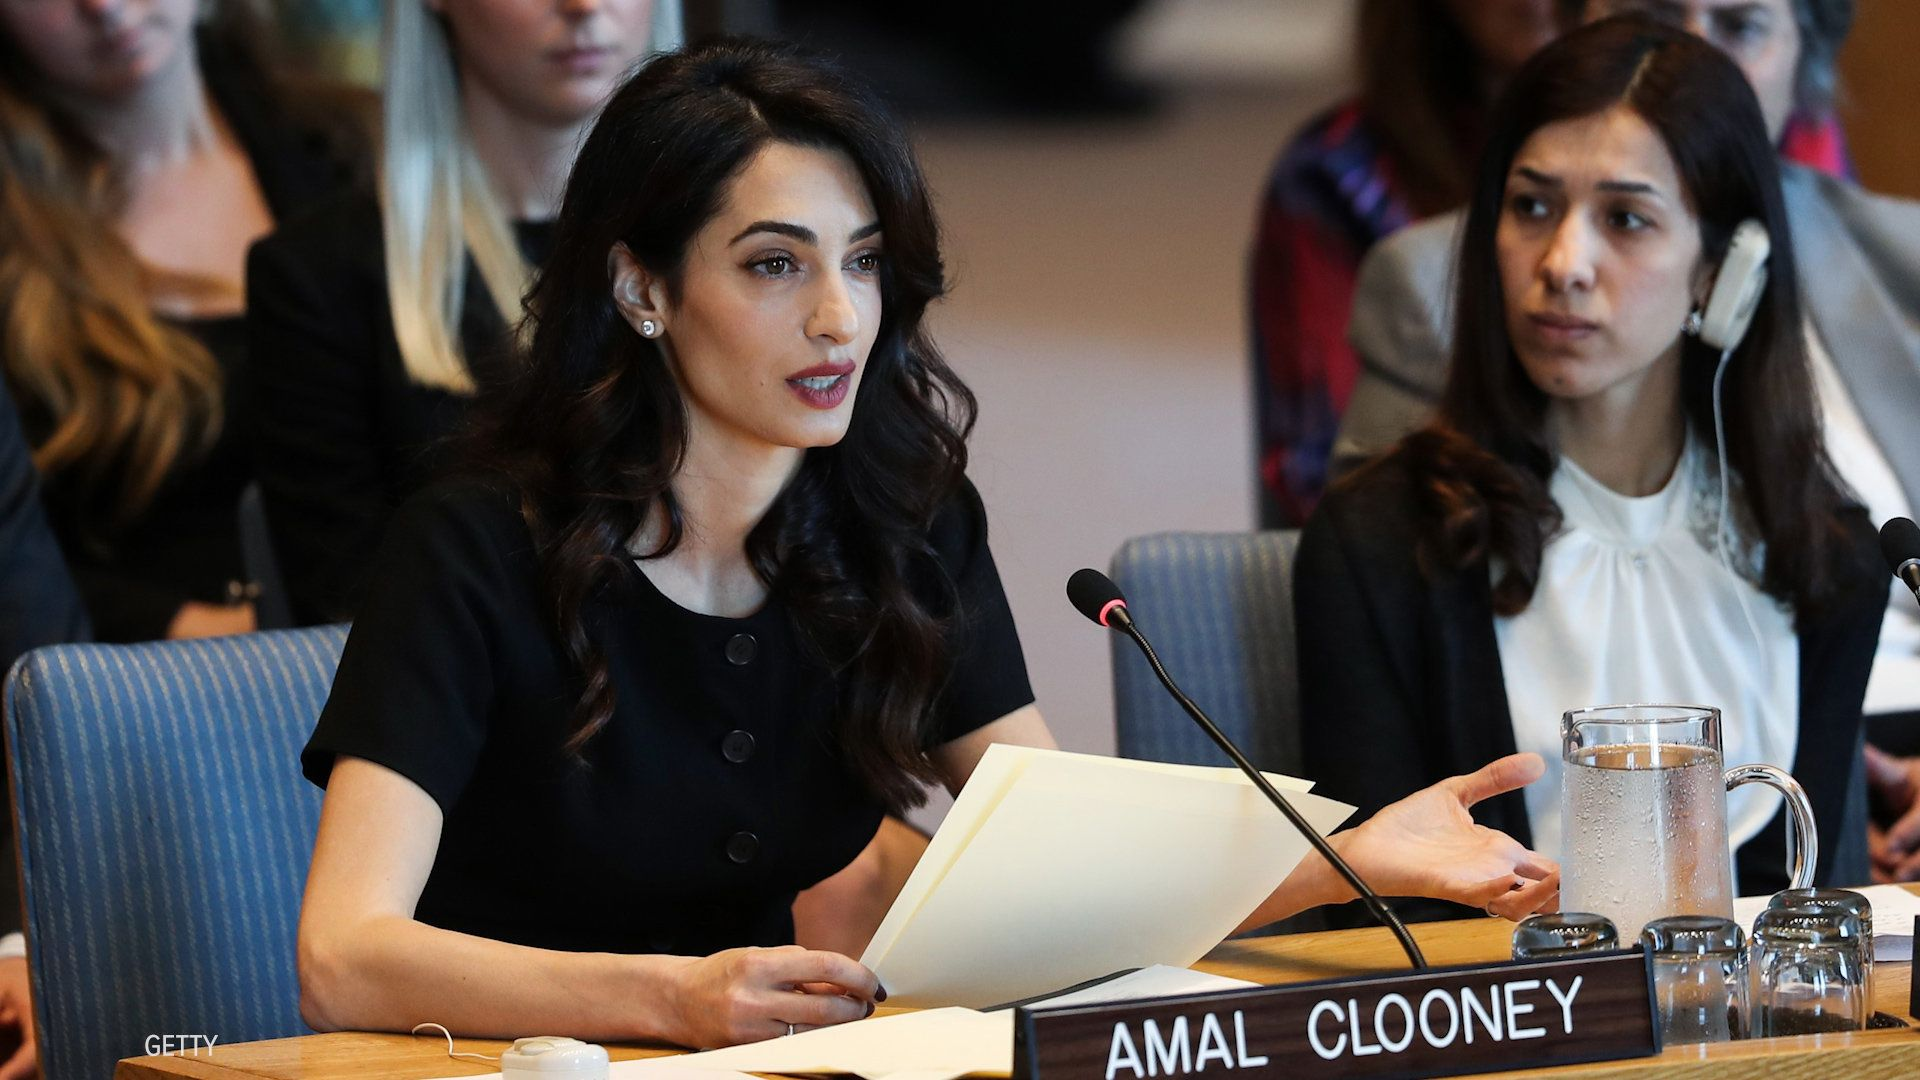 Human Rights Lawyer Amal Clooney Fights For ISIS Sexual Violence Survivors